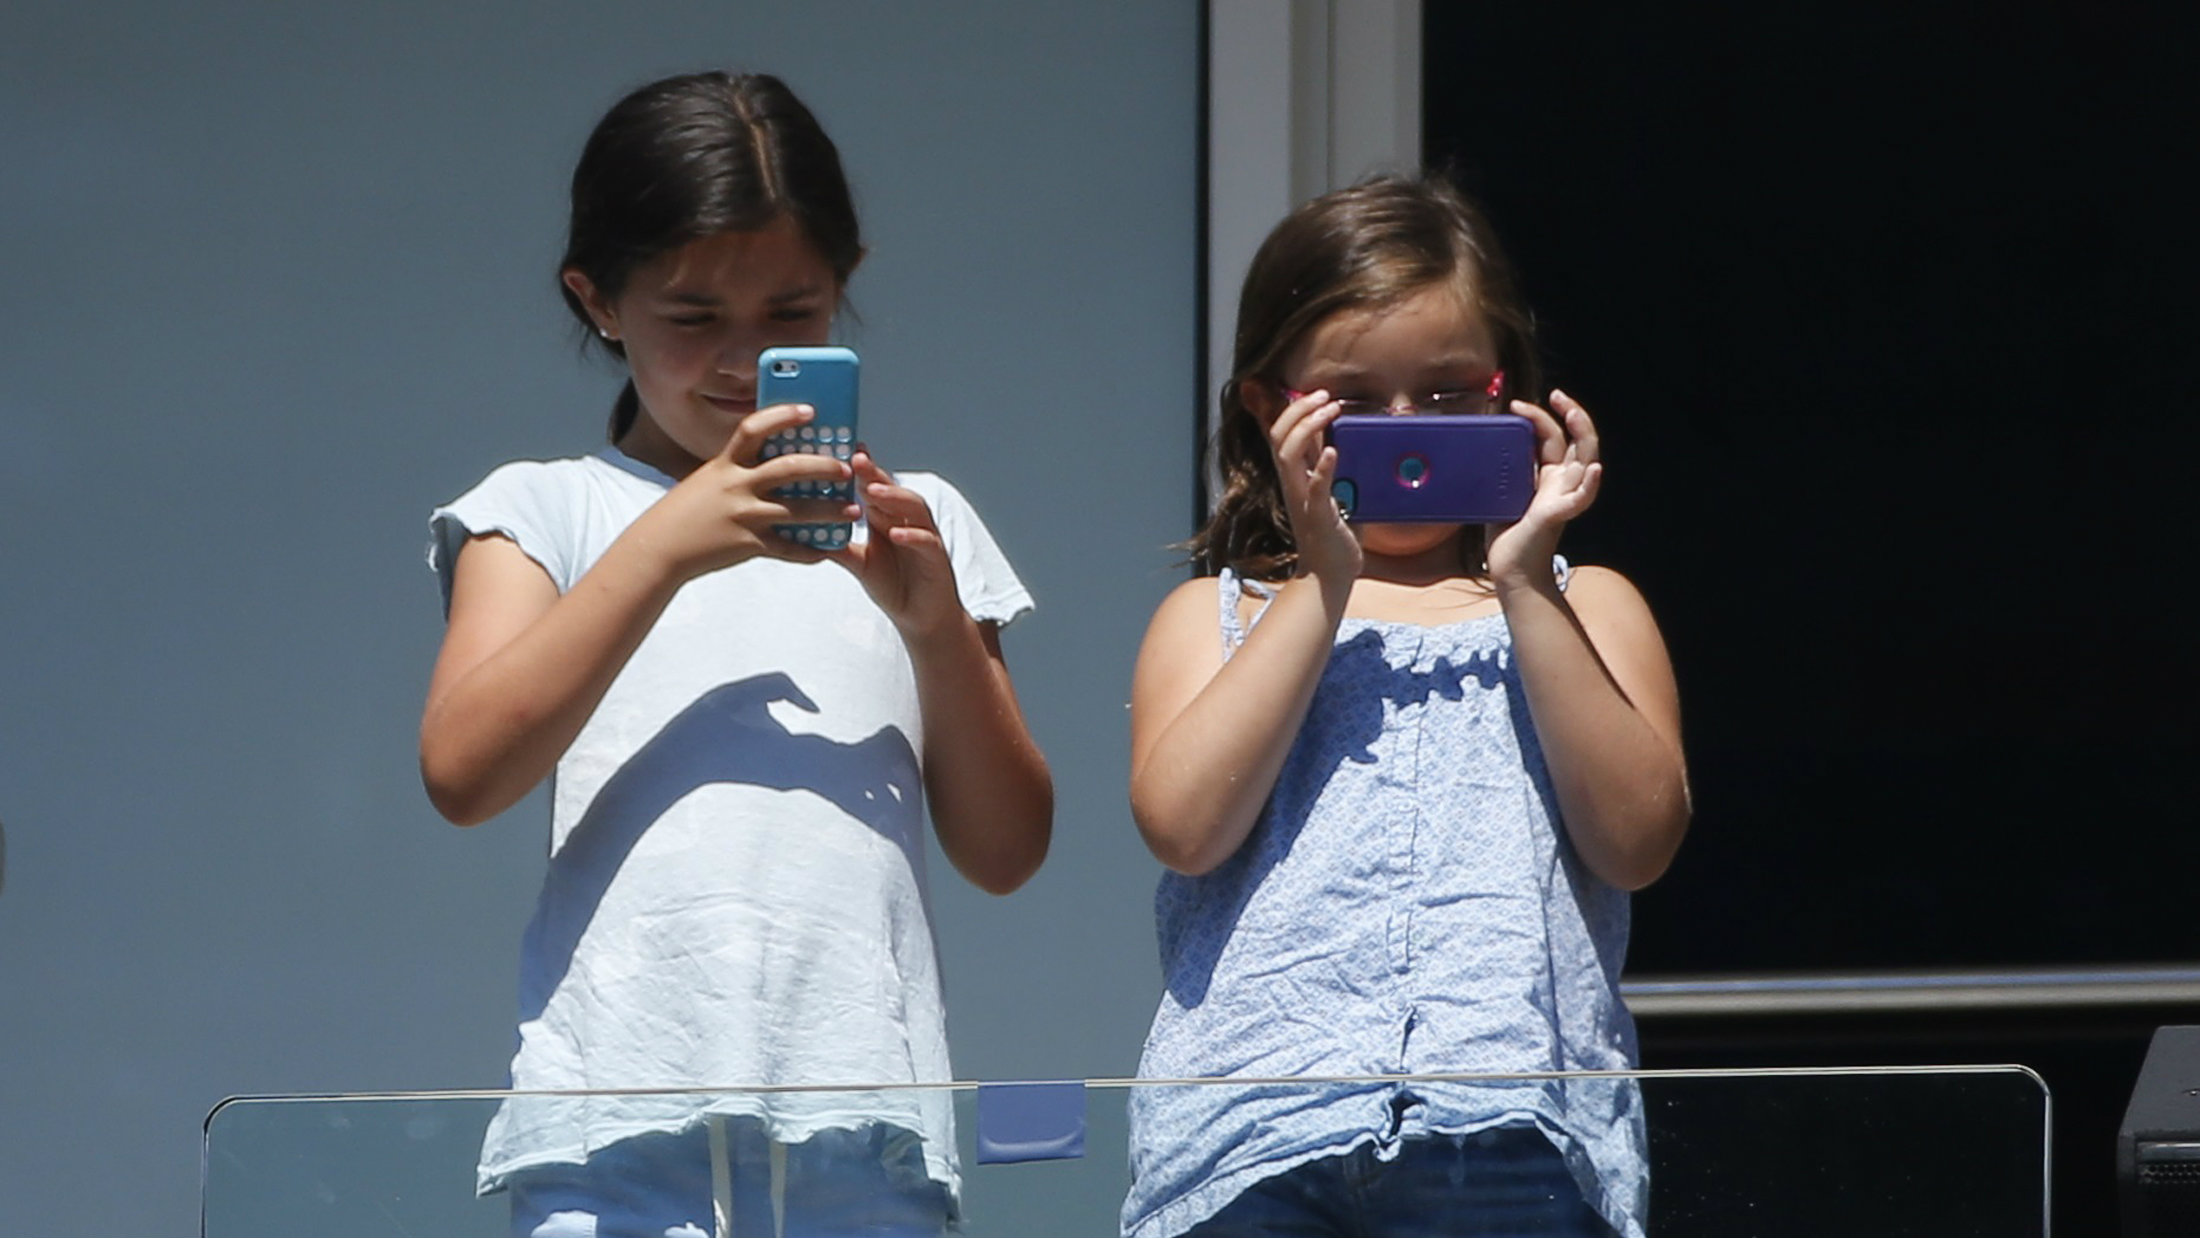 My Child Is Addicted To Screens Working With Families With >> Mobile Screen Time Among Us Kids Is Almost 10 Times Higher